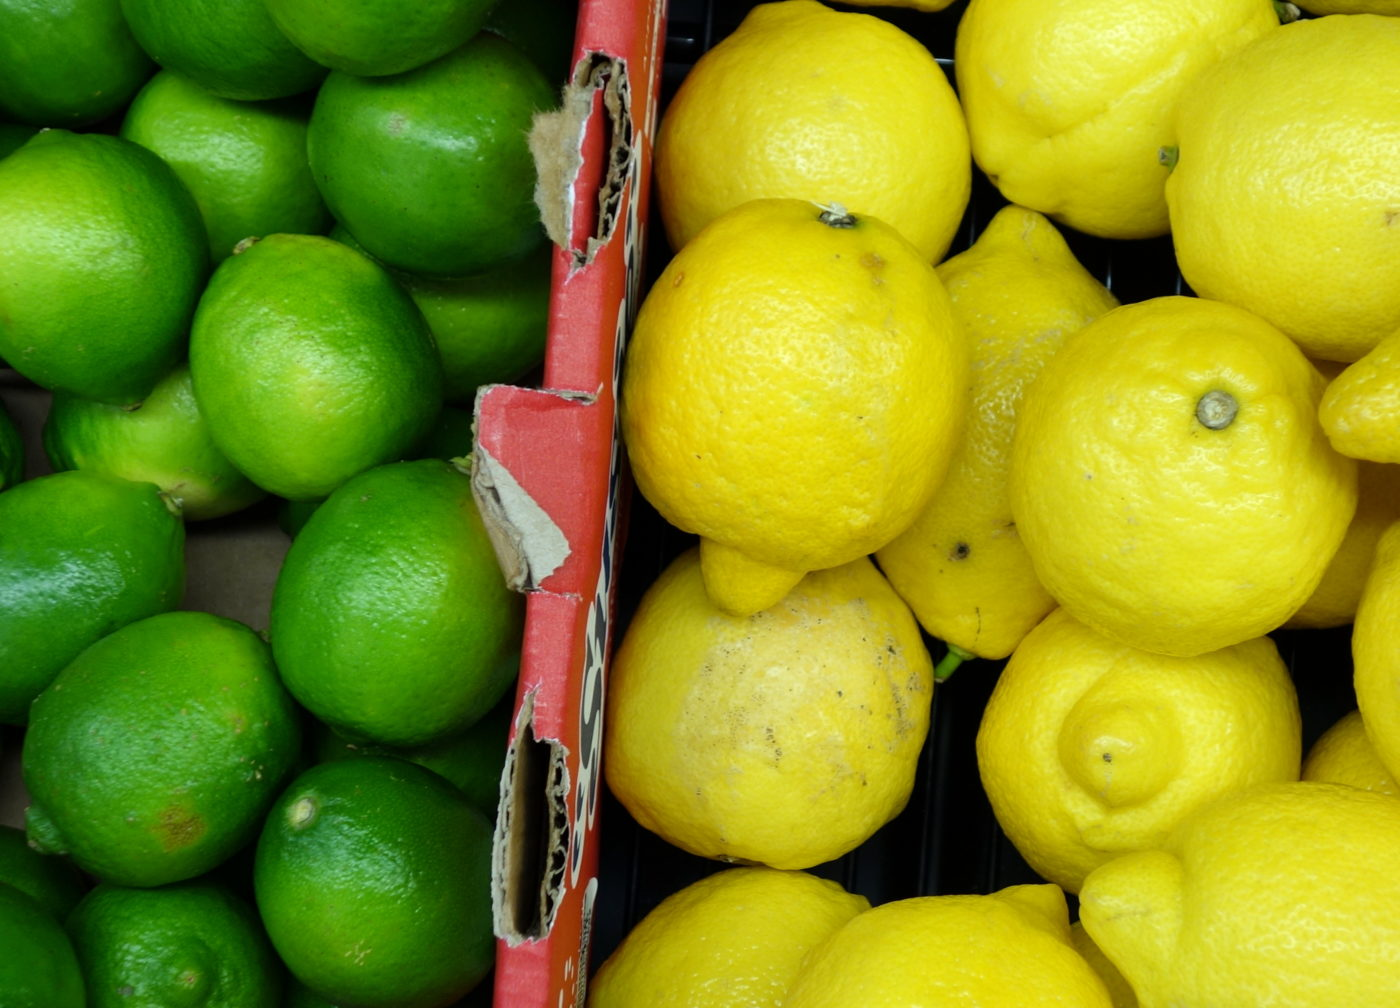 limes and lemons an almost zero calorie foods